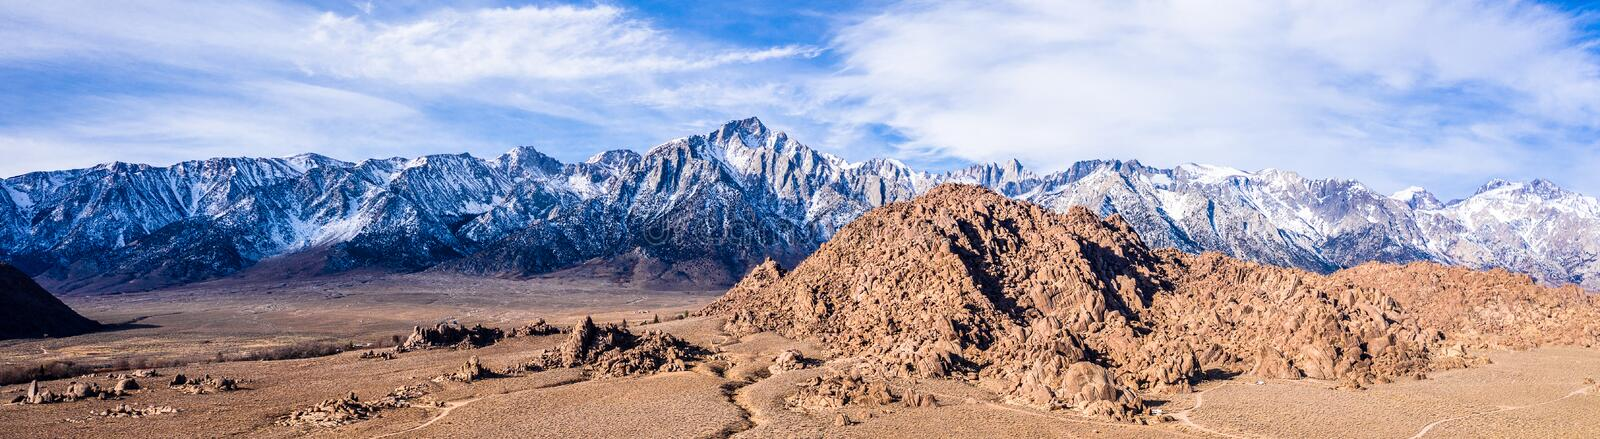 Aerial View of Mt Whitney Lone Pine, CA Eastern Sierra Nevada Alabama Hills. USA stock images